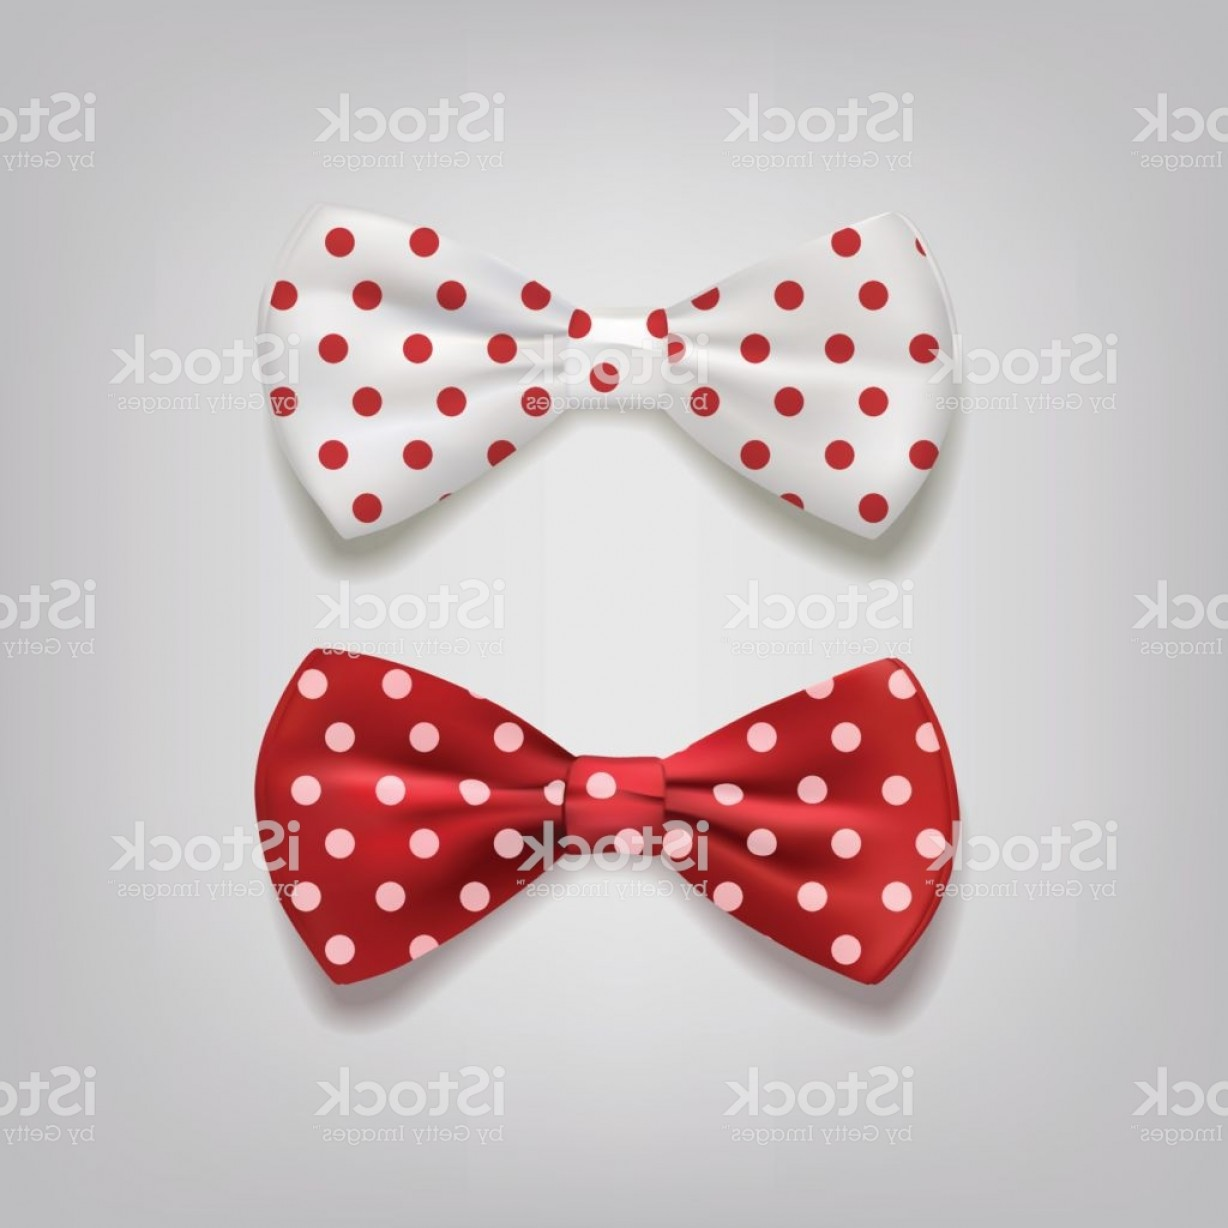 Vector Jeweled Dog Collar: Bow Ties Polka Dots Isolated On Gray Background Vector Illustration Gm